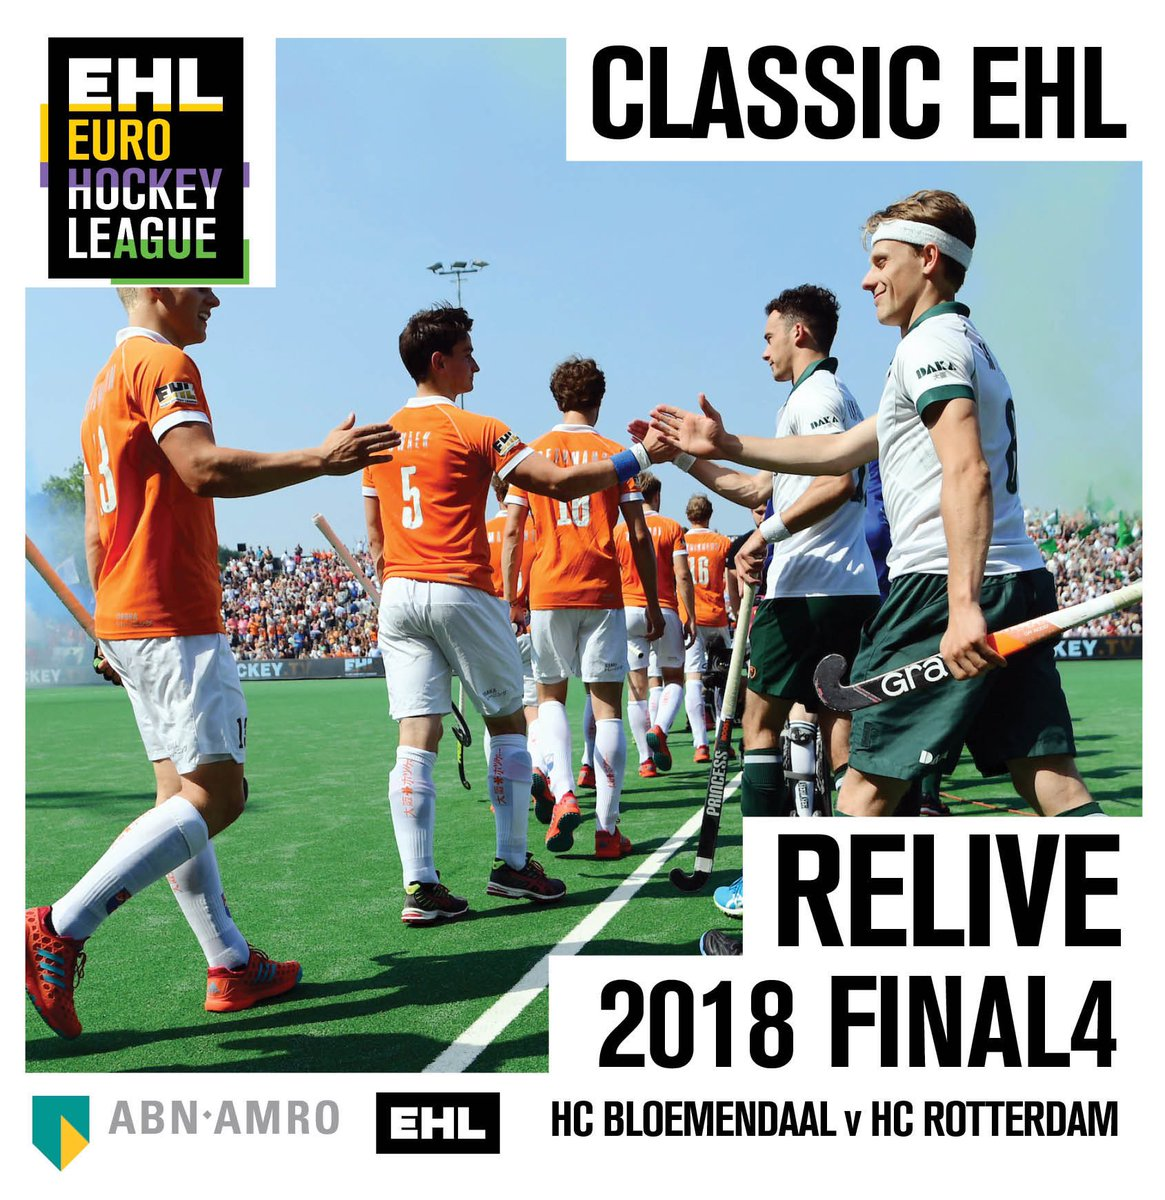 #ehlclassicmoments We can't bring you EHL live this weekend 😢 ... but we've made some classics RELIVE on https://t.co/rCf93BuRBC - today's games... https://t.co/W6xzRsGhtP